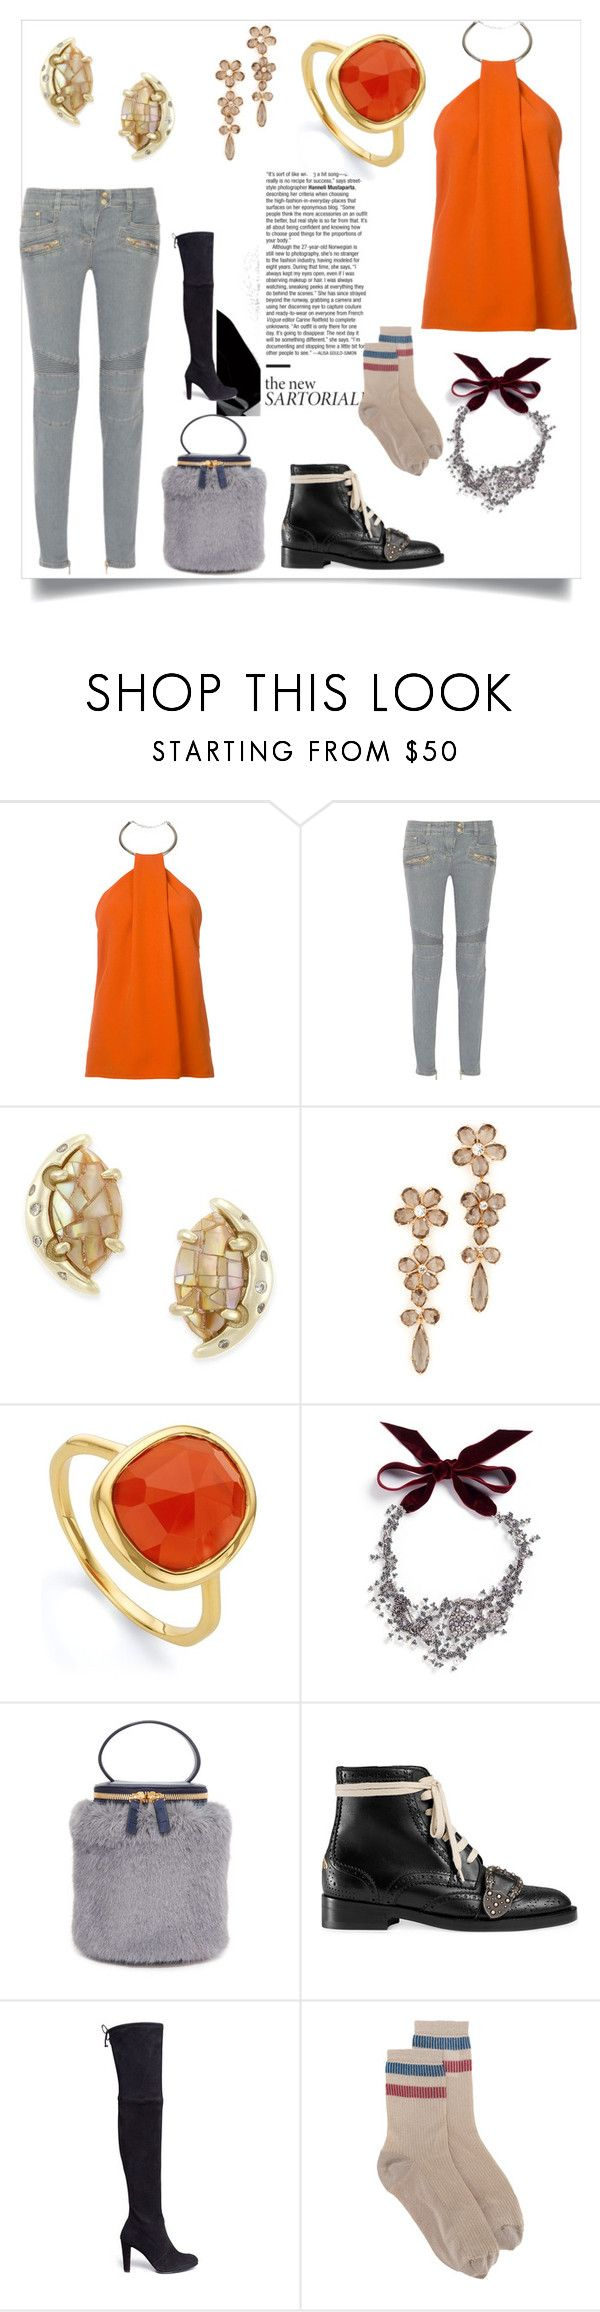 """""""Set sale offer"""" by kristeen9 ❤ liked on Polyvore featuring Thierry Mugler, Balmain, Kendra Scott, Kate Spade, Monica Vinader, Lulu Frost, Milma, Gucci, Stuart Weitzman and RED Valentino"""